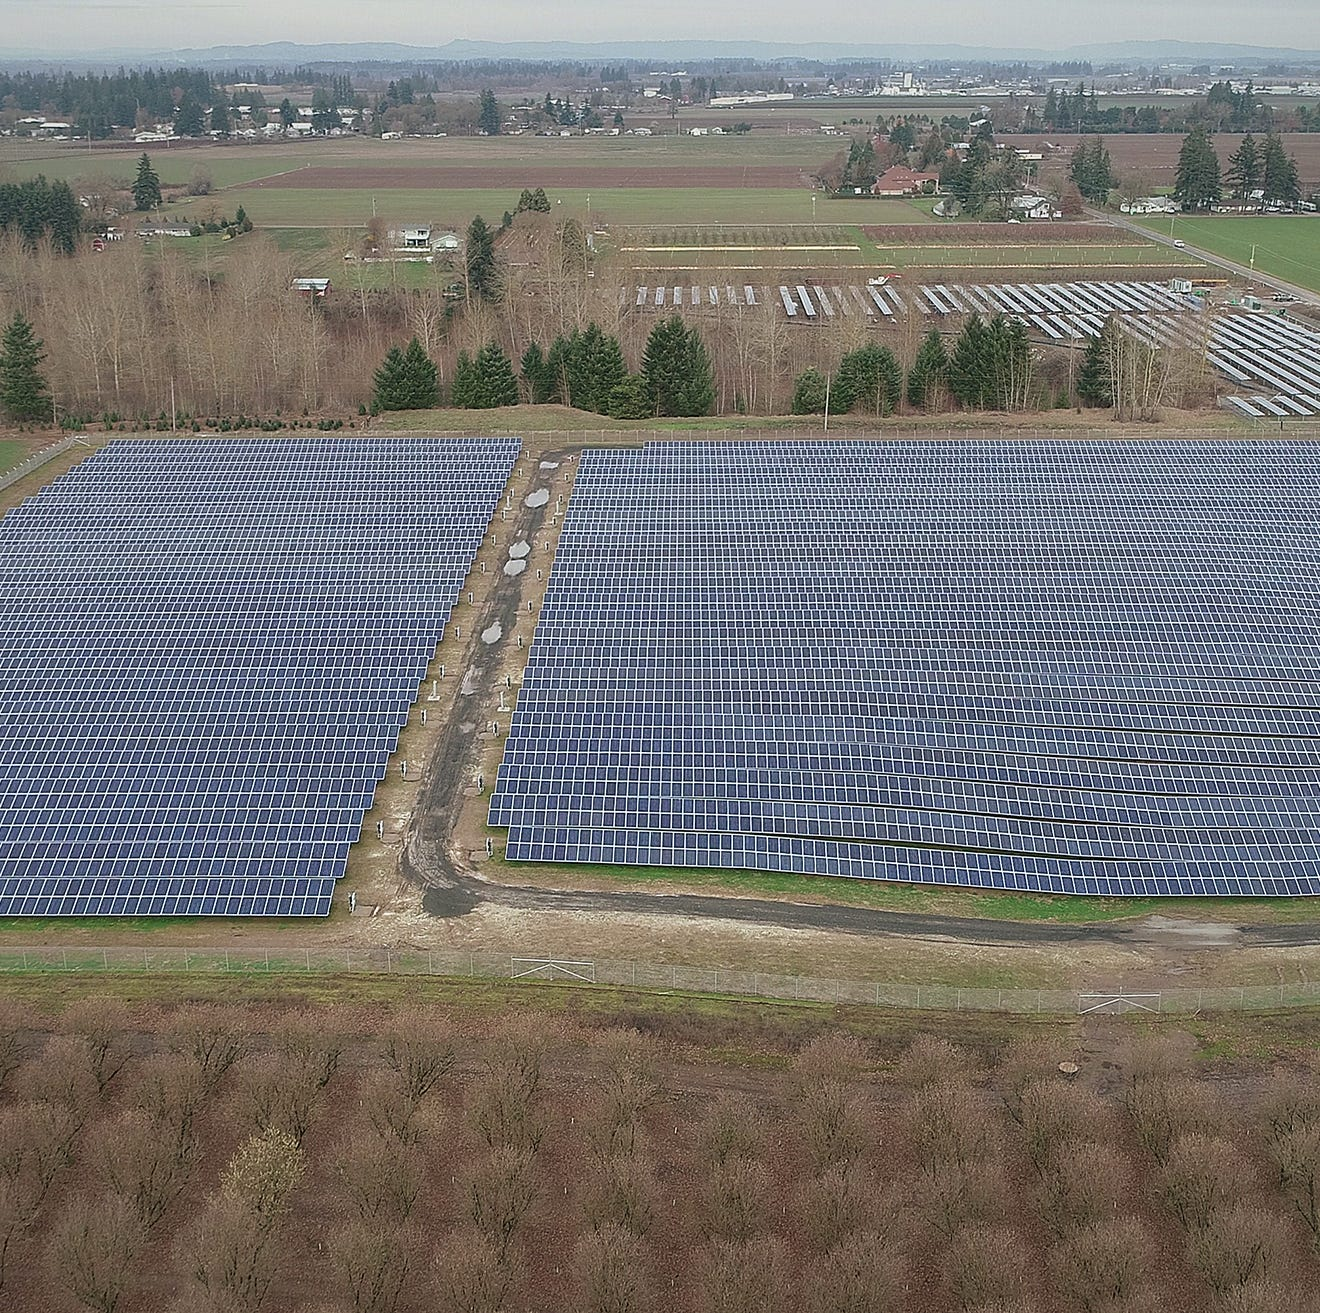 Oregon could effectively ban solar farms, but first a bunch of new ones will be built